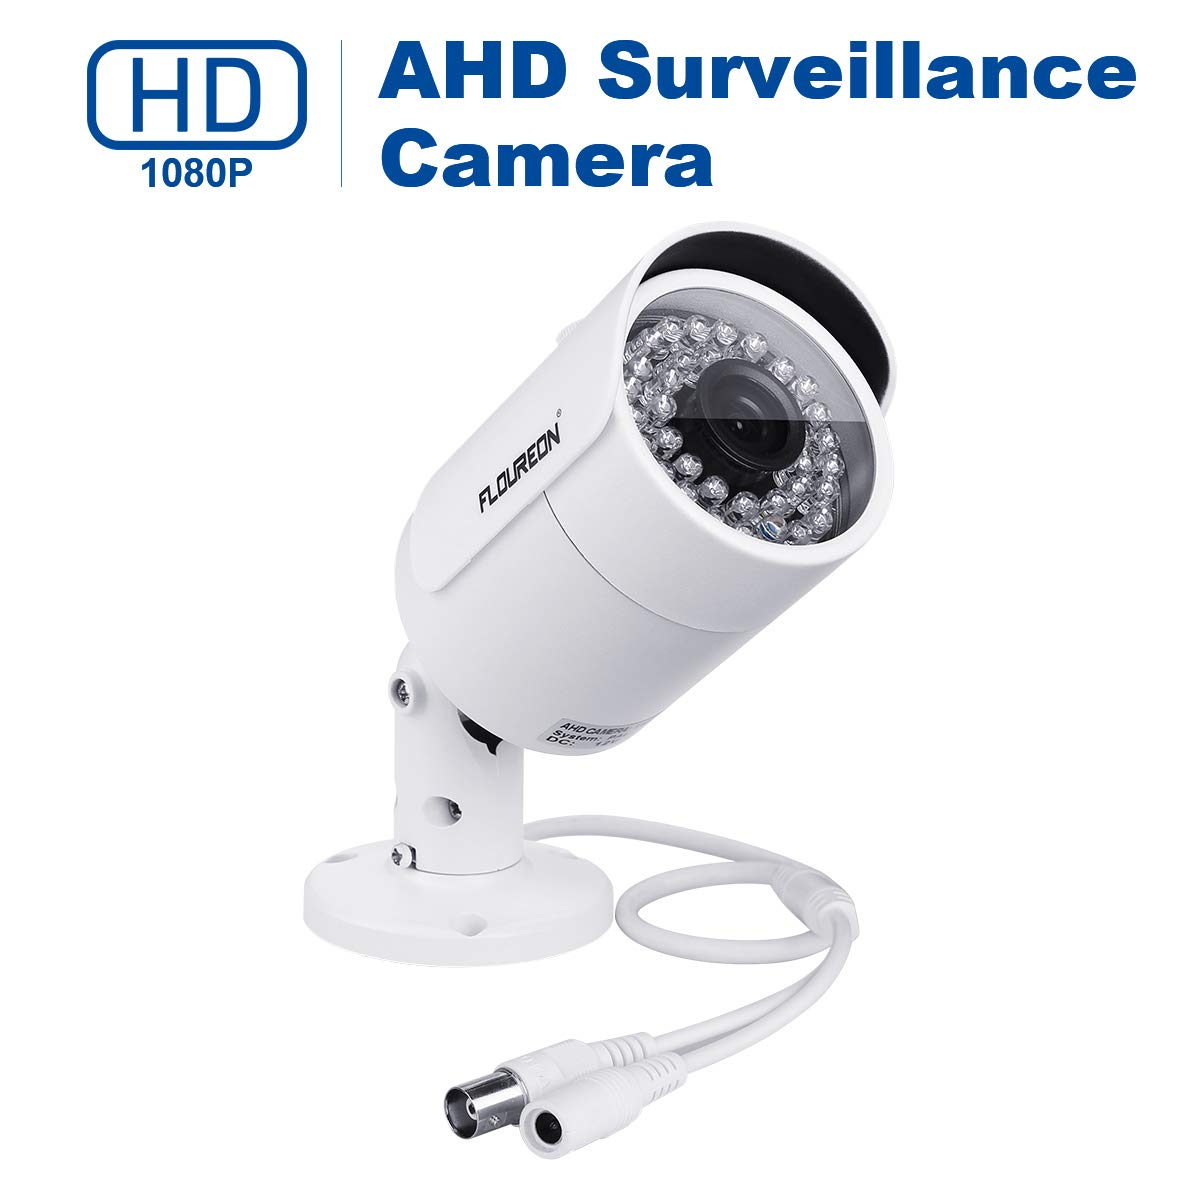 FLOUREON House Security Camera 1080P AHD CCTV DVR Bullet Camera, Outdoor IP66 Waterproof Camera Surveillance Security with Long Distance Day &Night Vision (White)